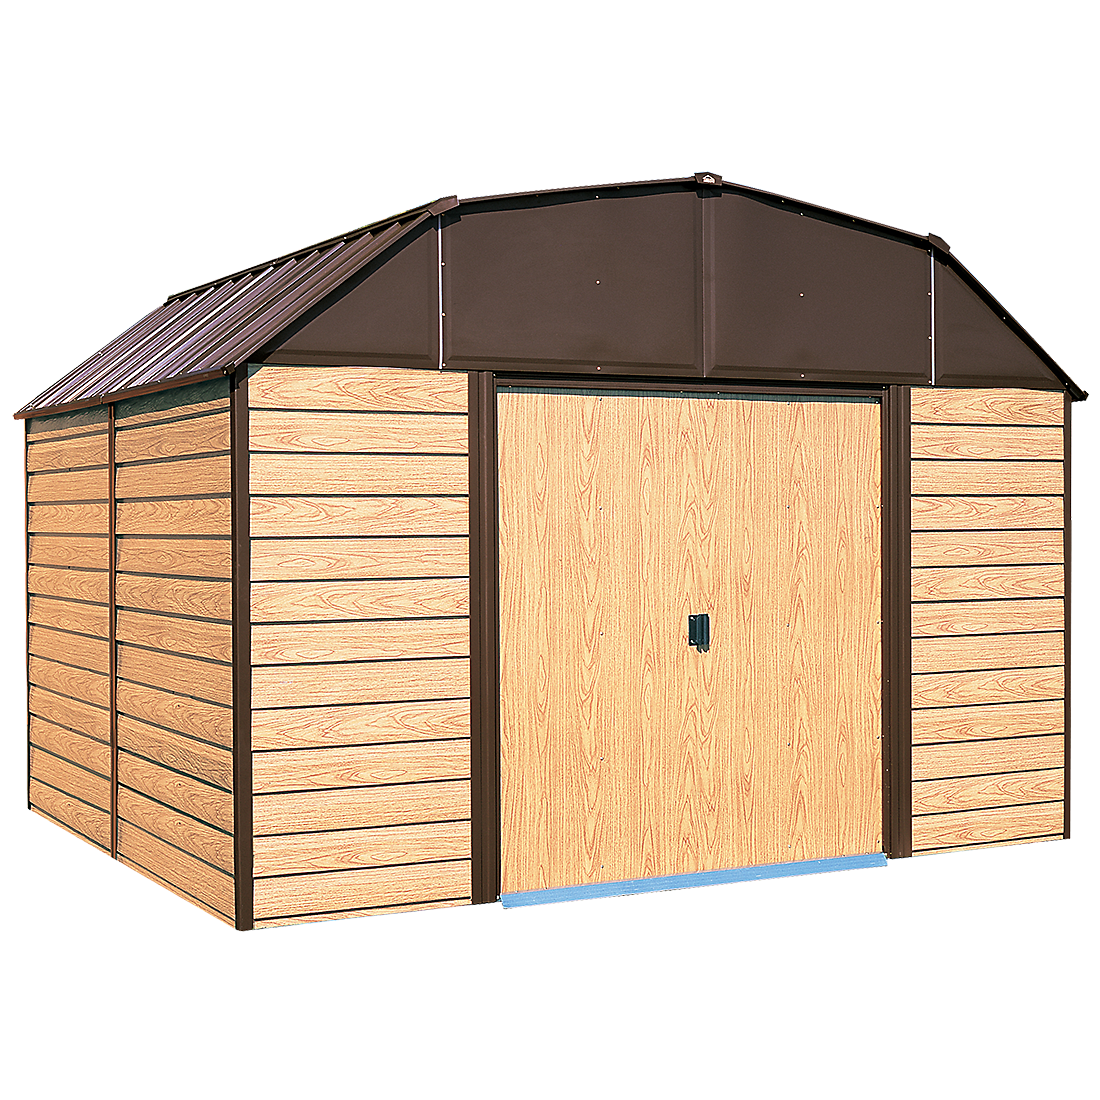 Woodhaven 10 x 9 ft. Shed